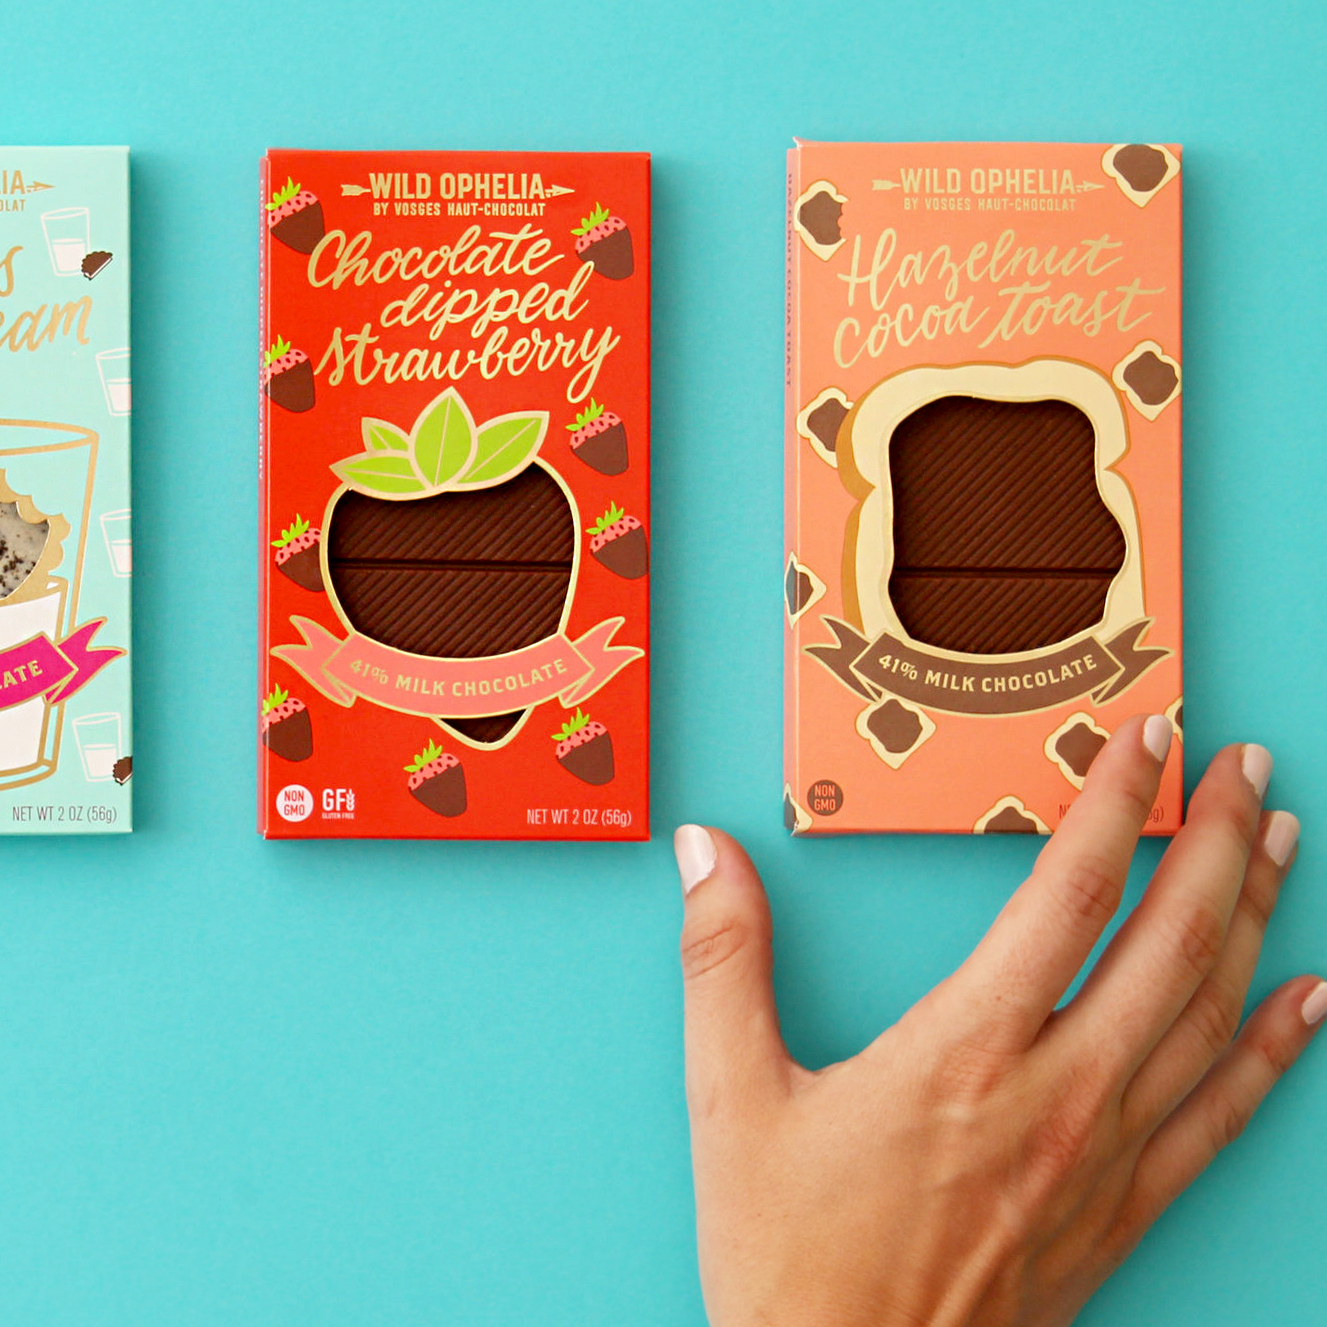 four wild ophelia chocolate bars and hand